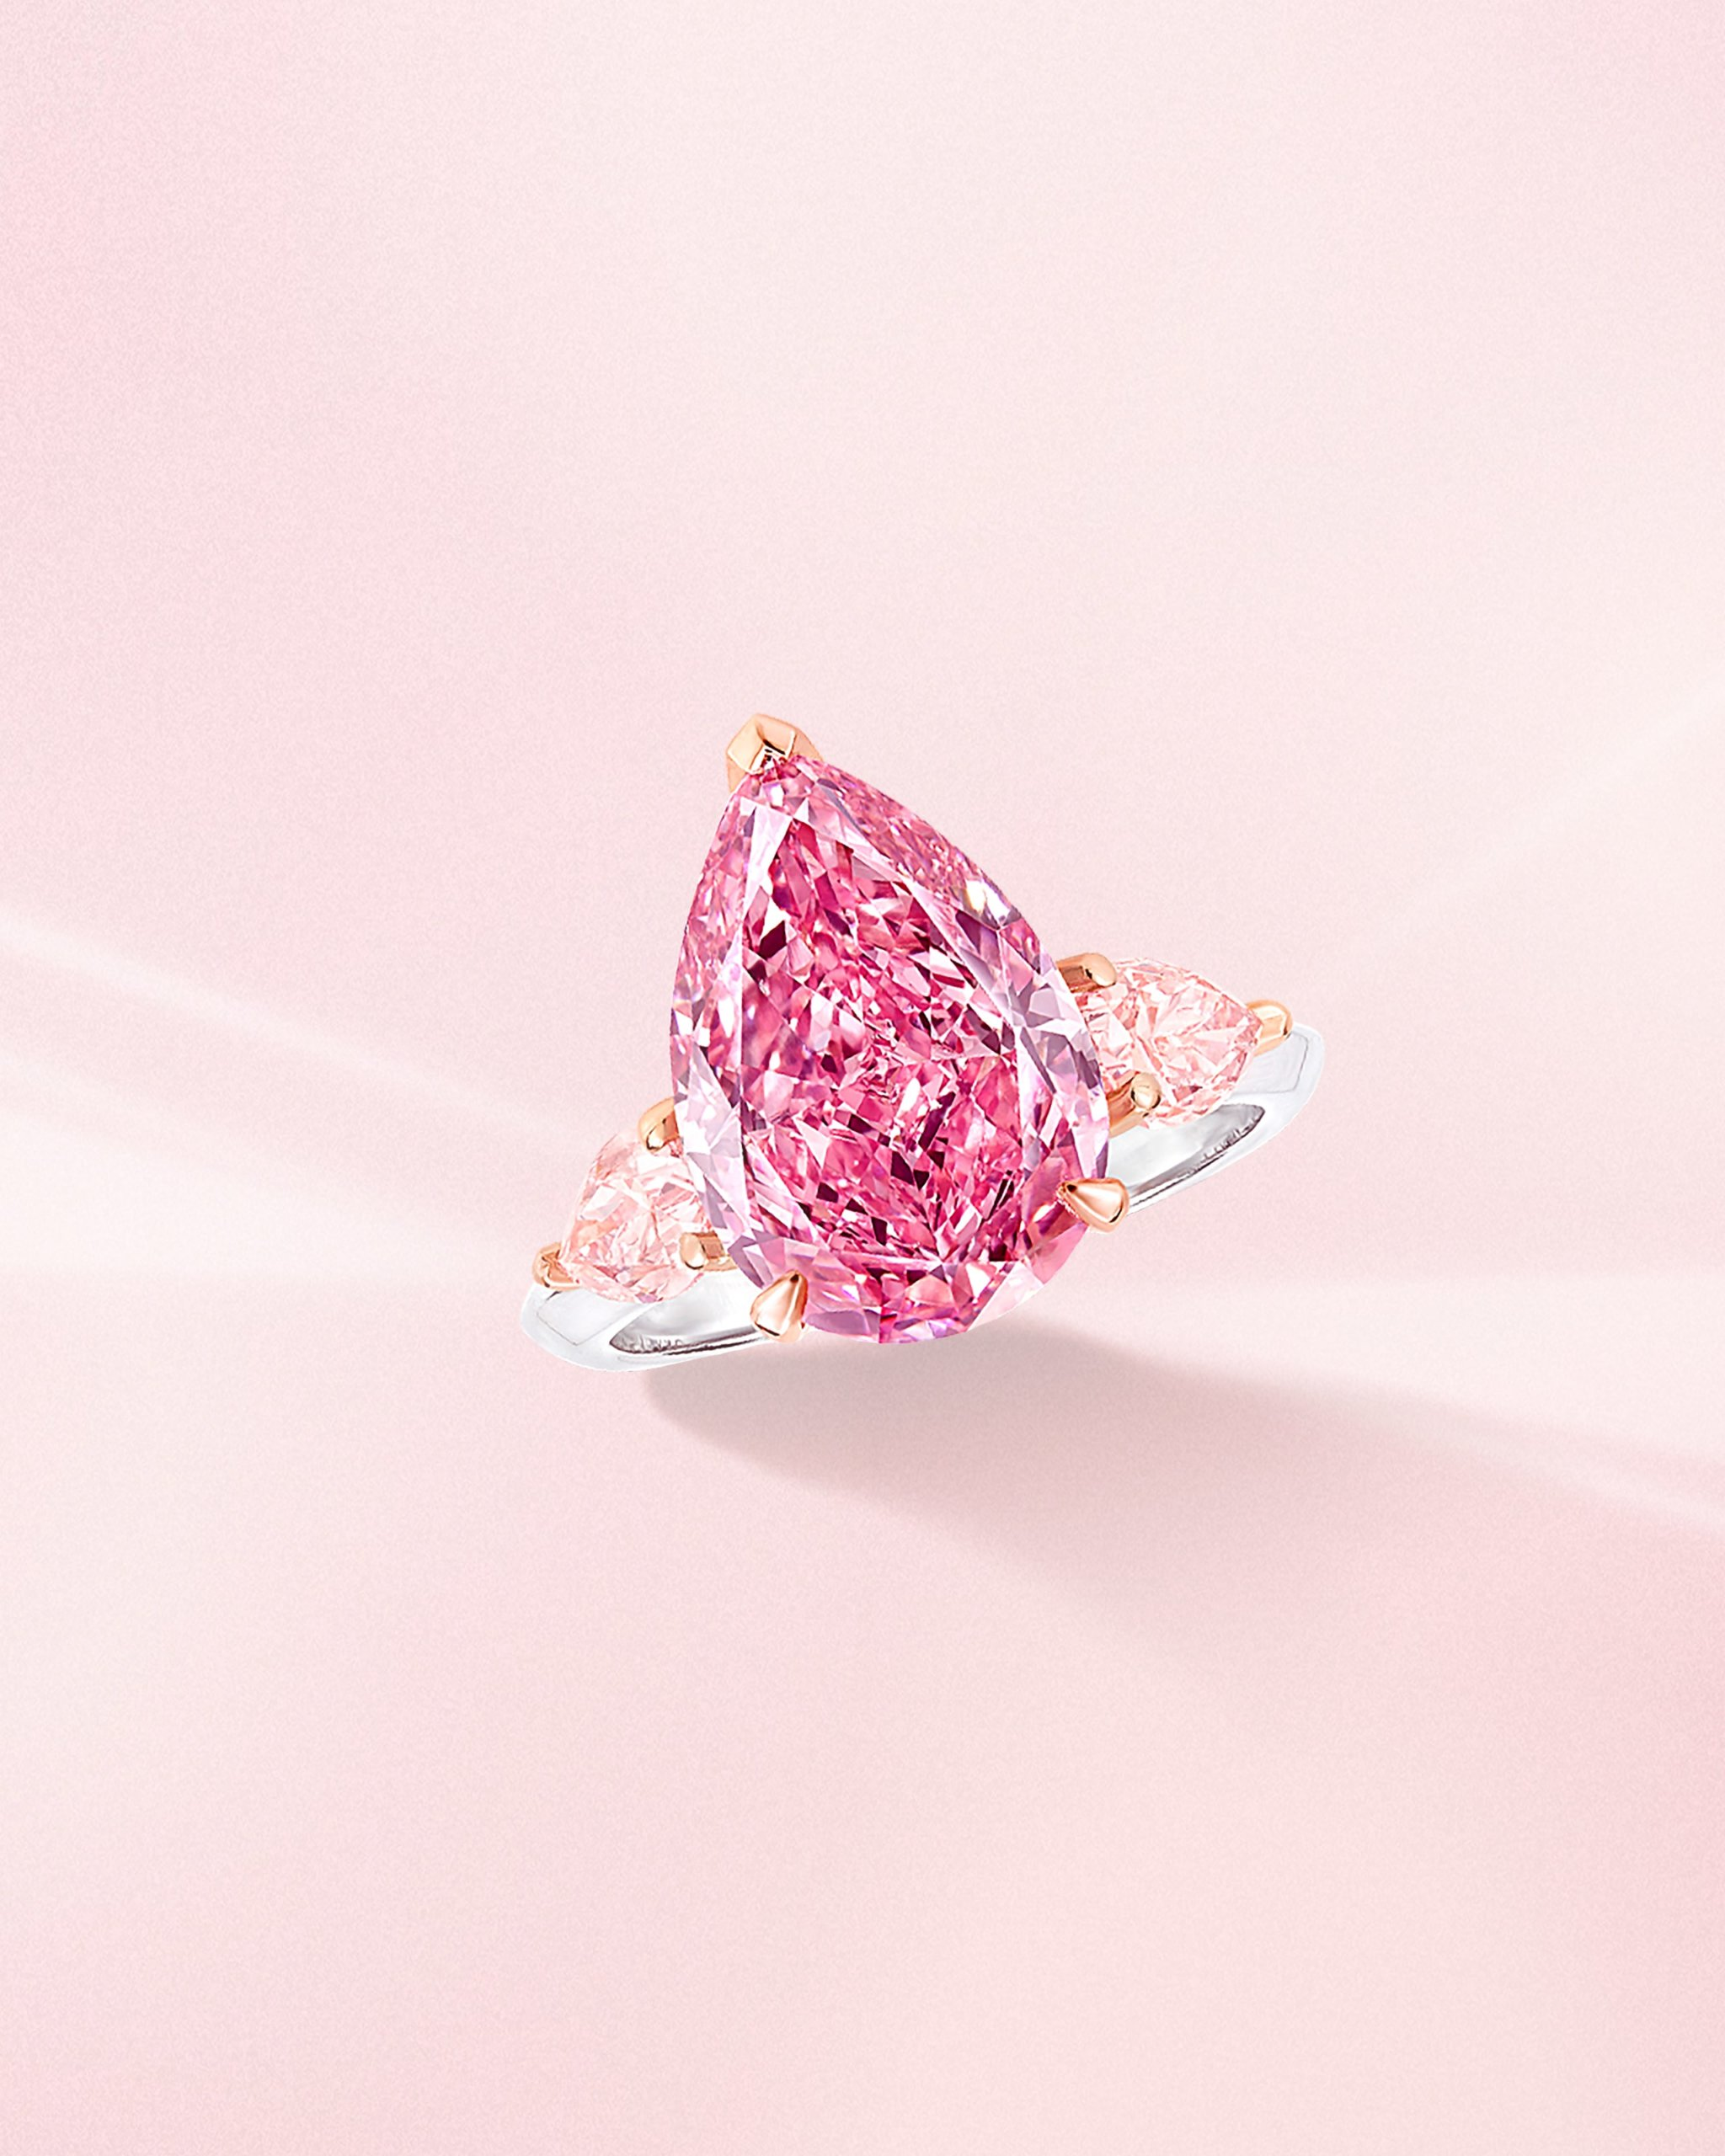 Fancy vivid pink pear shaped diamond ring with side light pink diamonds on a platinum band from Graff